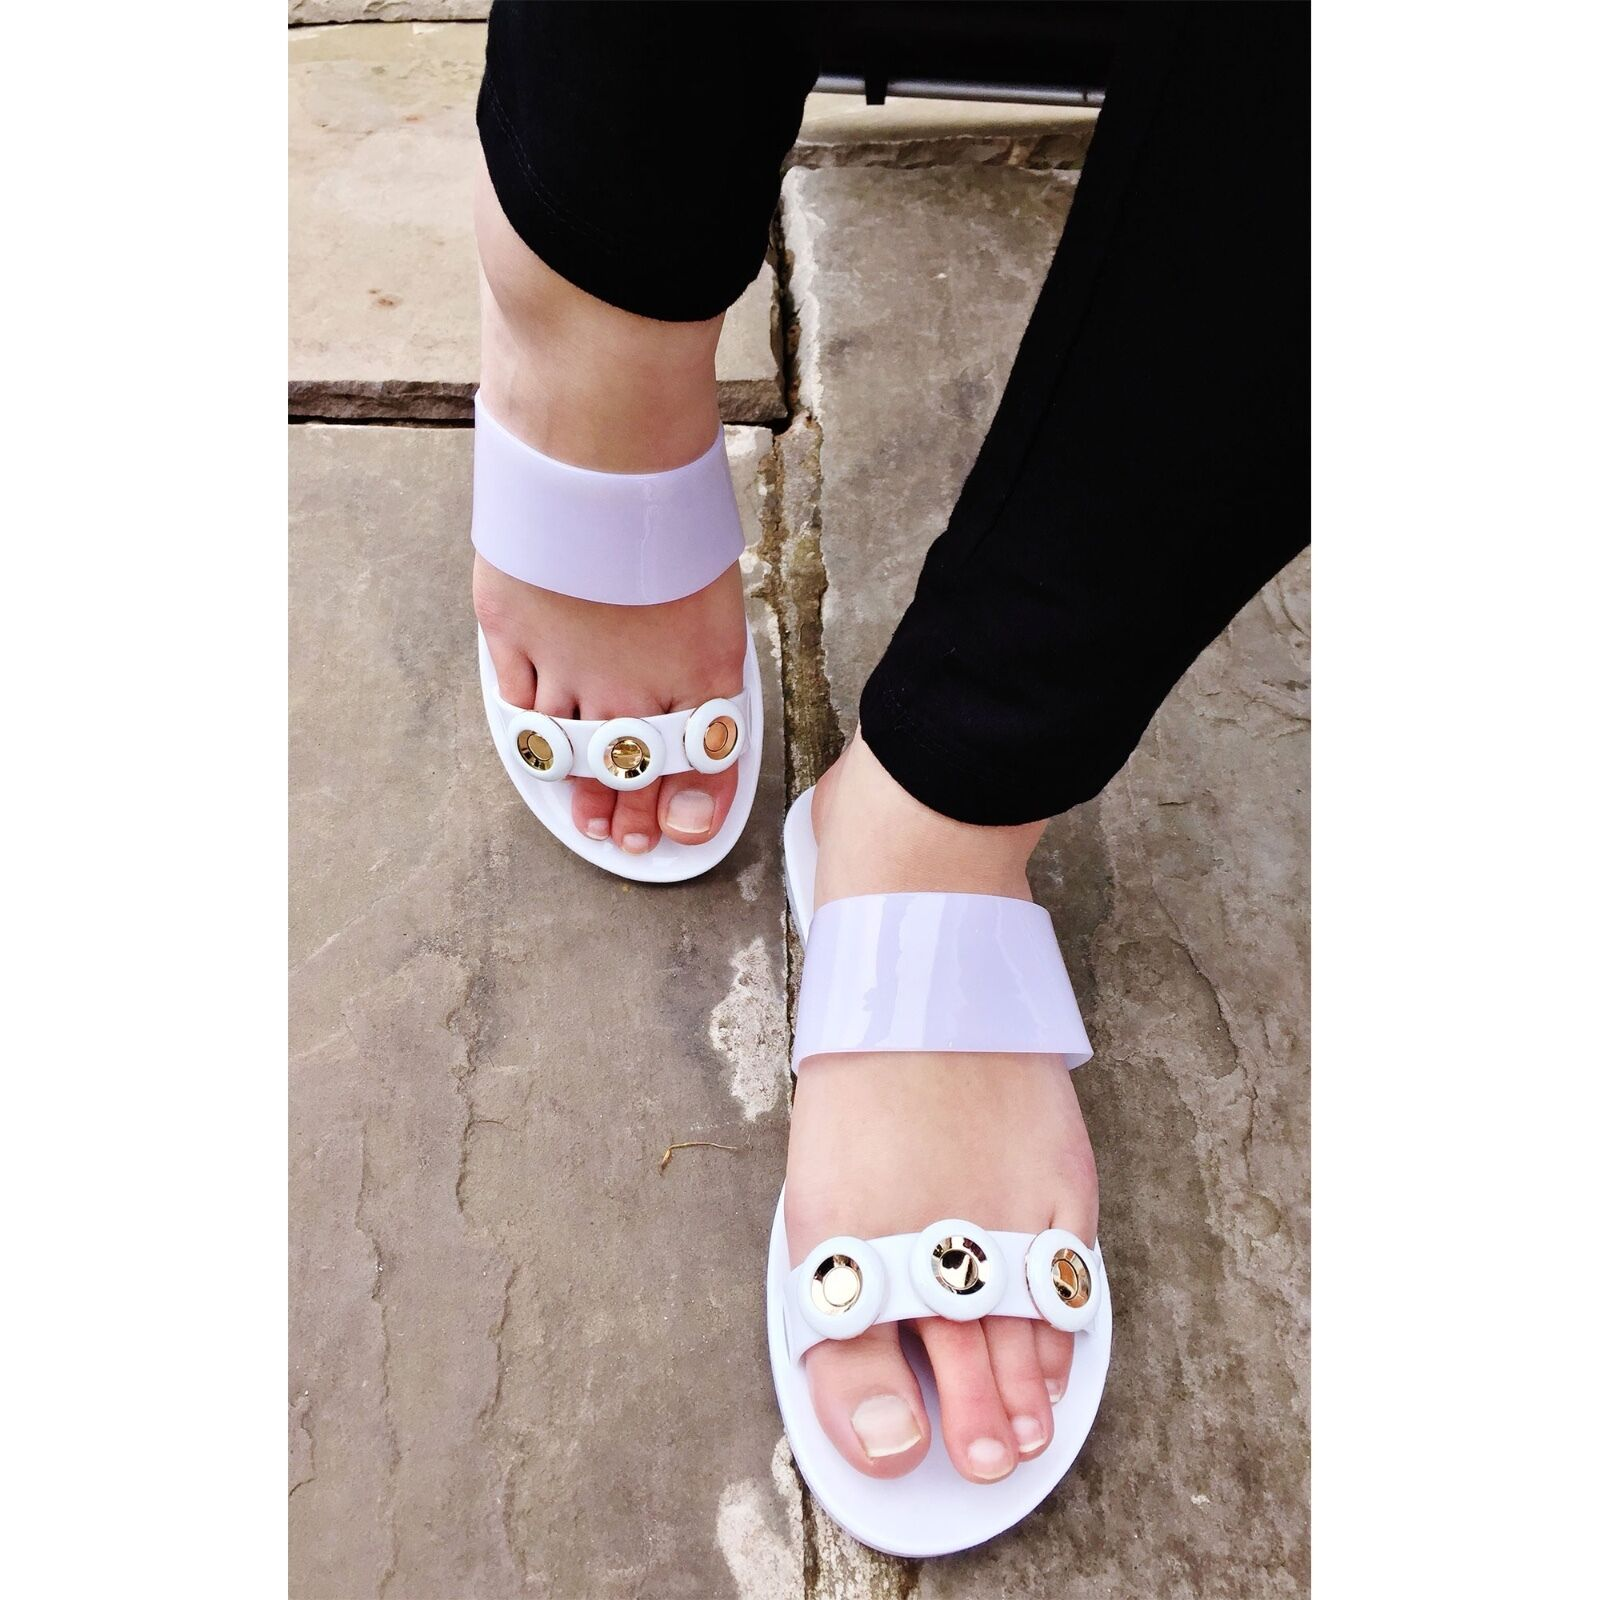 mesdames  s s s jelly diaFemmete slider mules holiday summer sandales chaussures de plage 8e6bbc